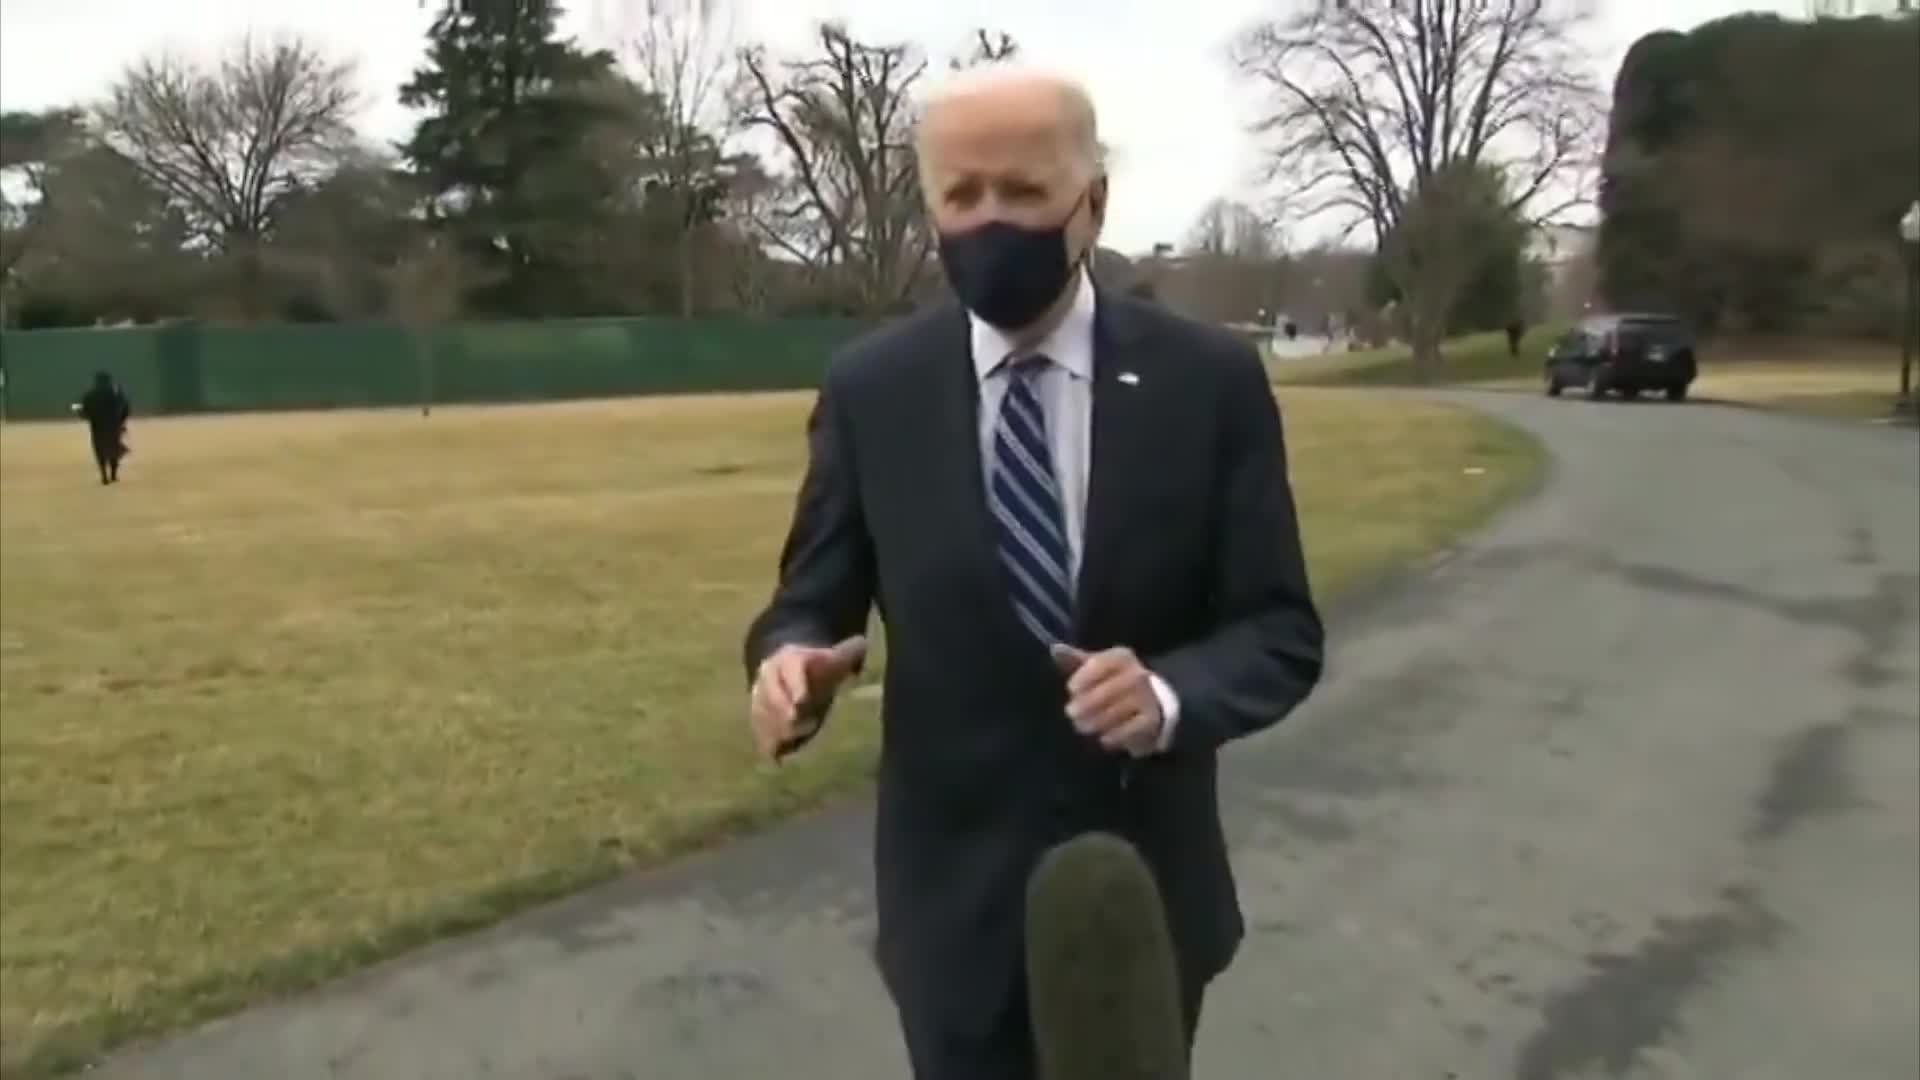 Explained: Why This Video of Biden and a Dead Cat Looks Fake, but Isn't. by Mick West